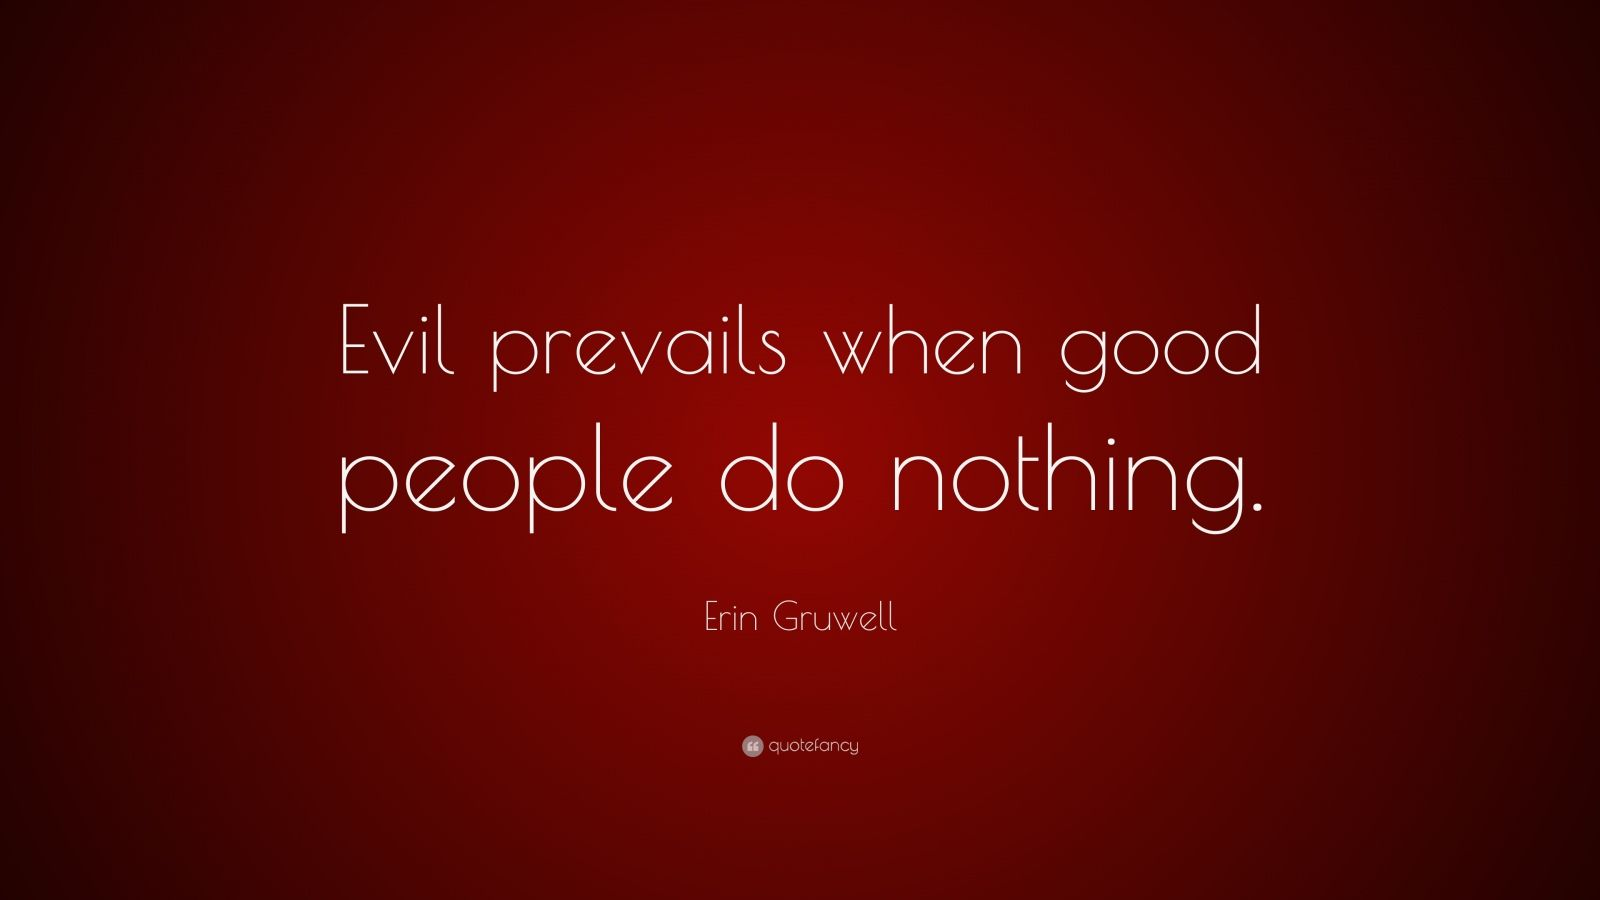 when good men do nothing When good men do nothing, they get nothing good done to be good, one must do good the lord commands his people to do good (lk 6:35 eph 2:10) christ gave himself for us, that he might redeem us from i all iniquity, and purify unto himself a peculiar people, zealous of good works (tit 2:14.